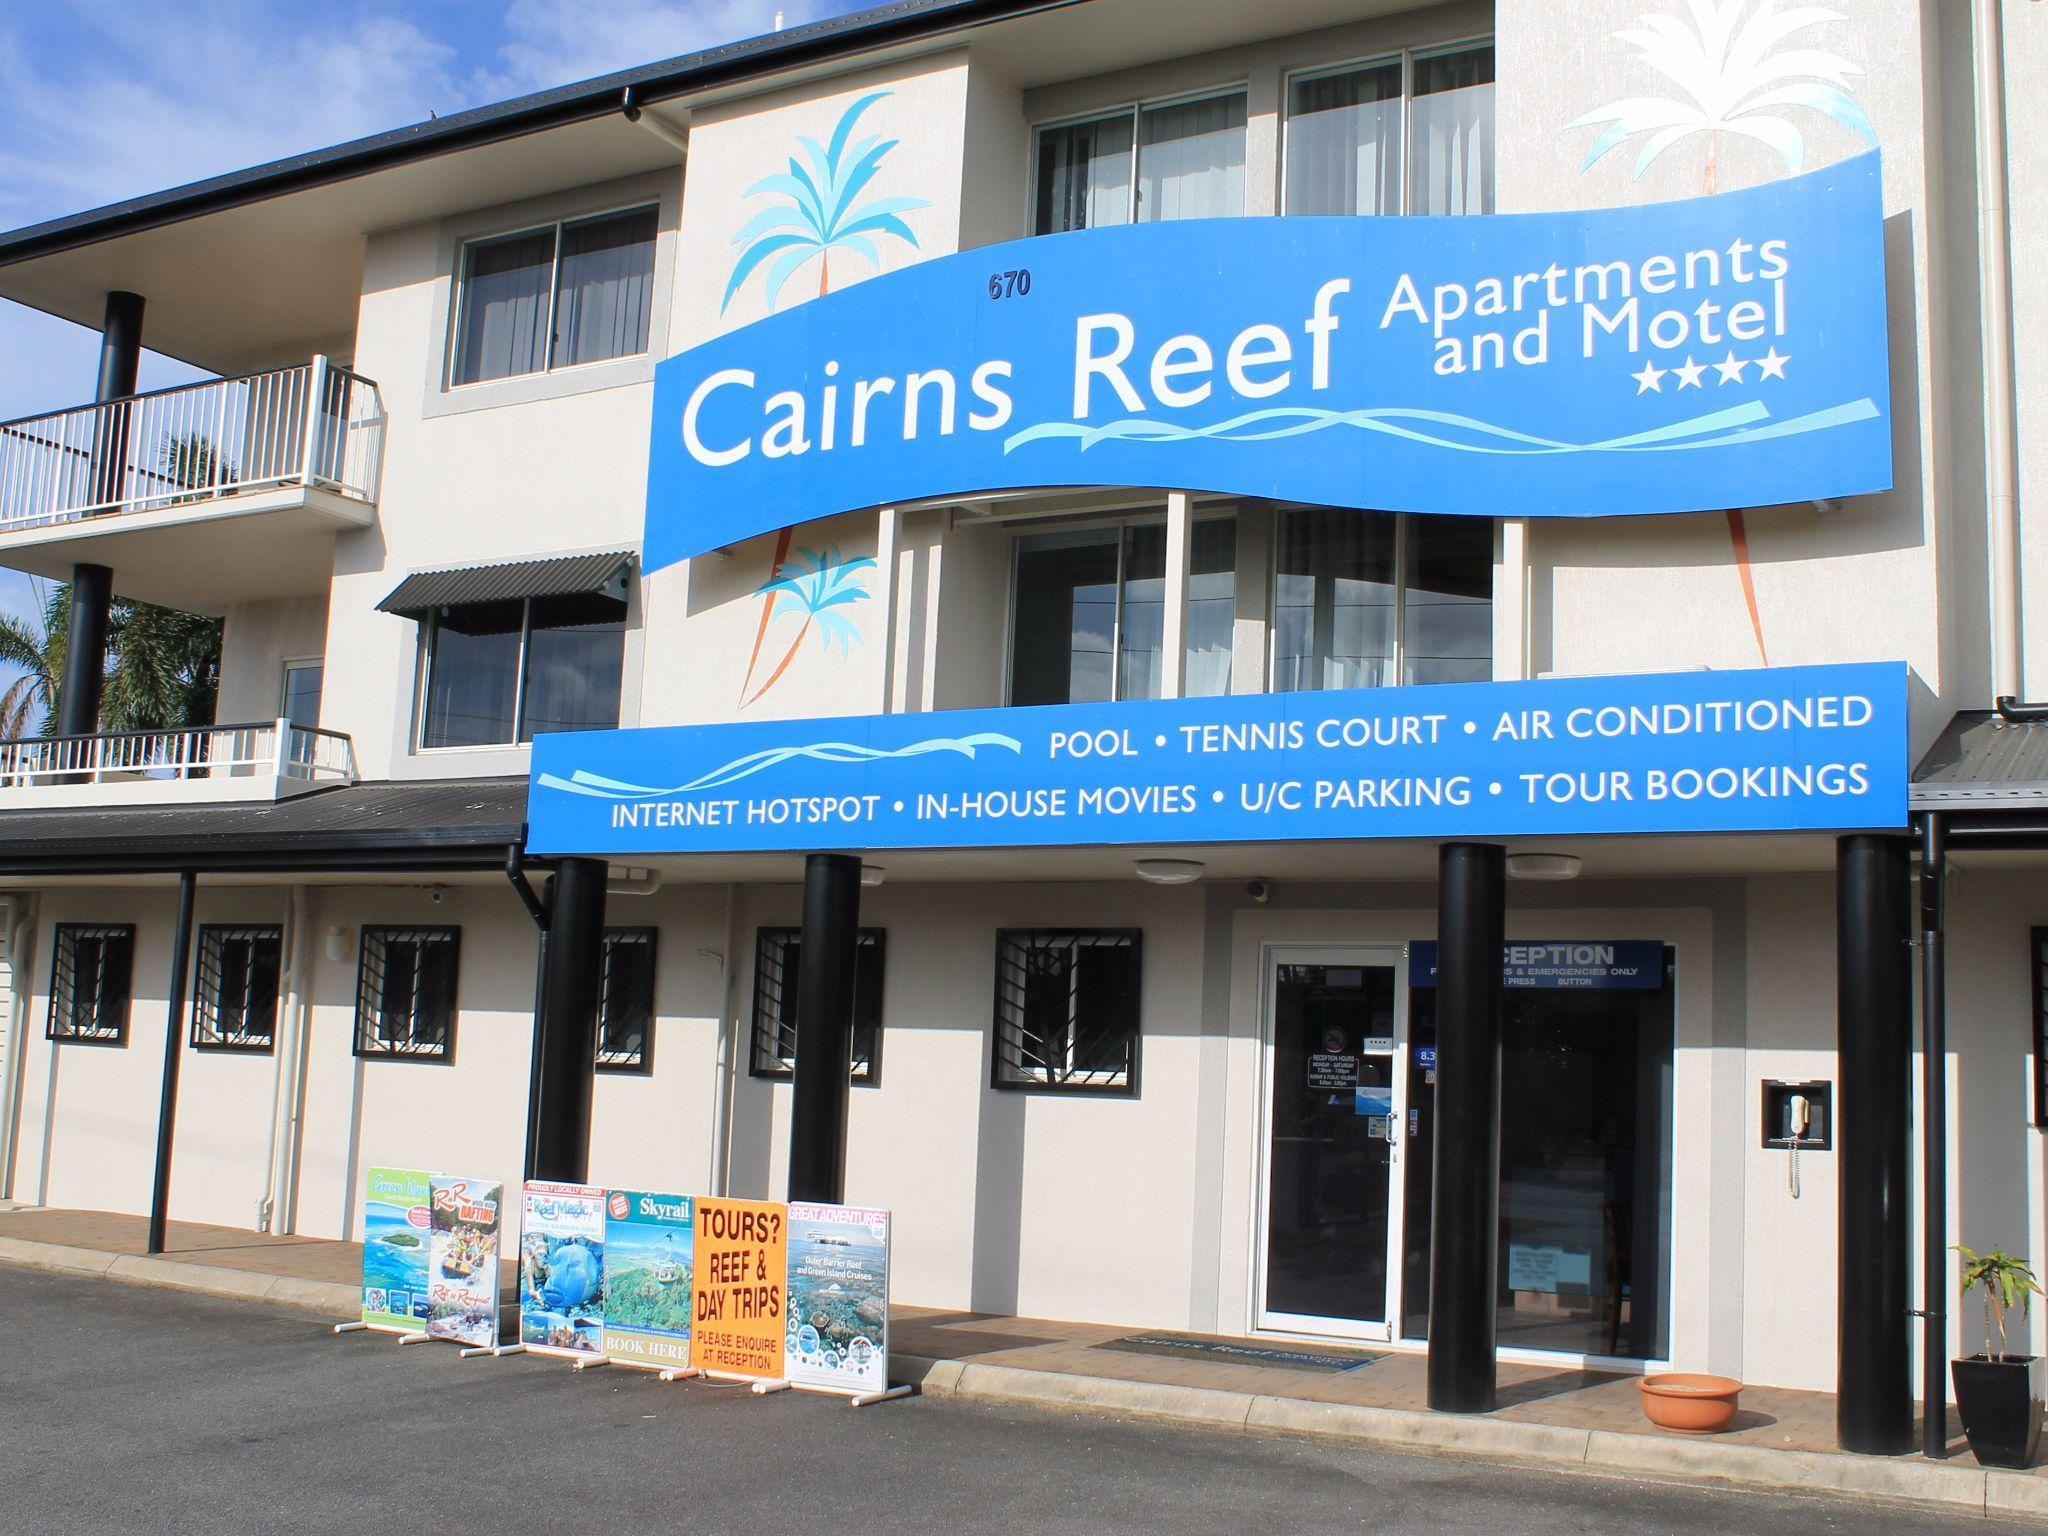 Review Cairns Reef Apartments & Motel